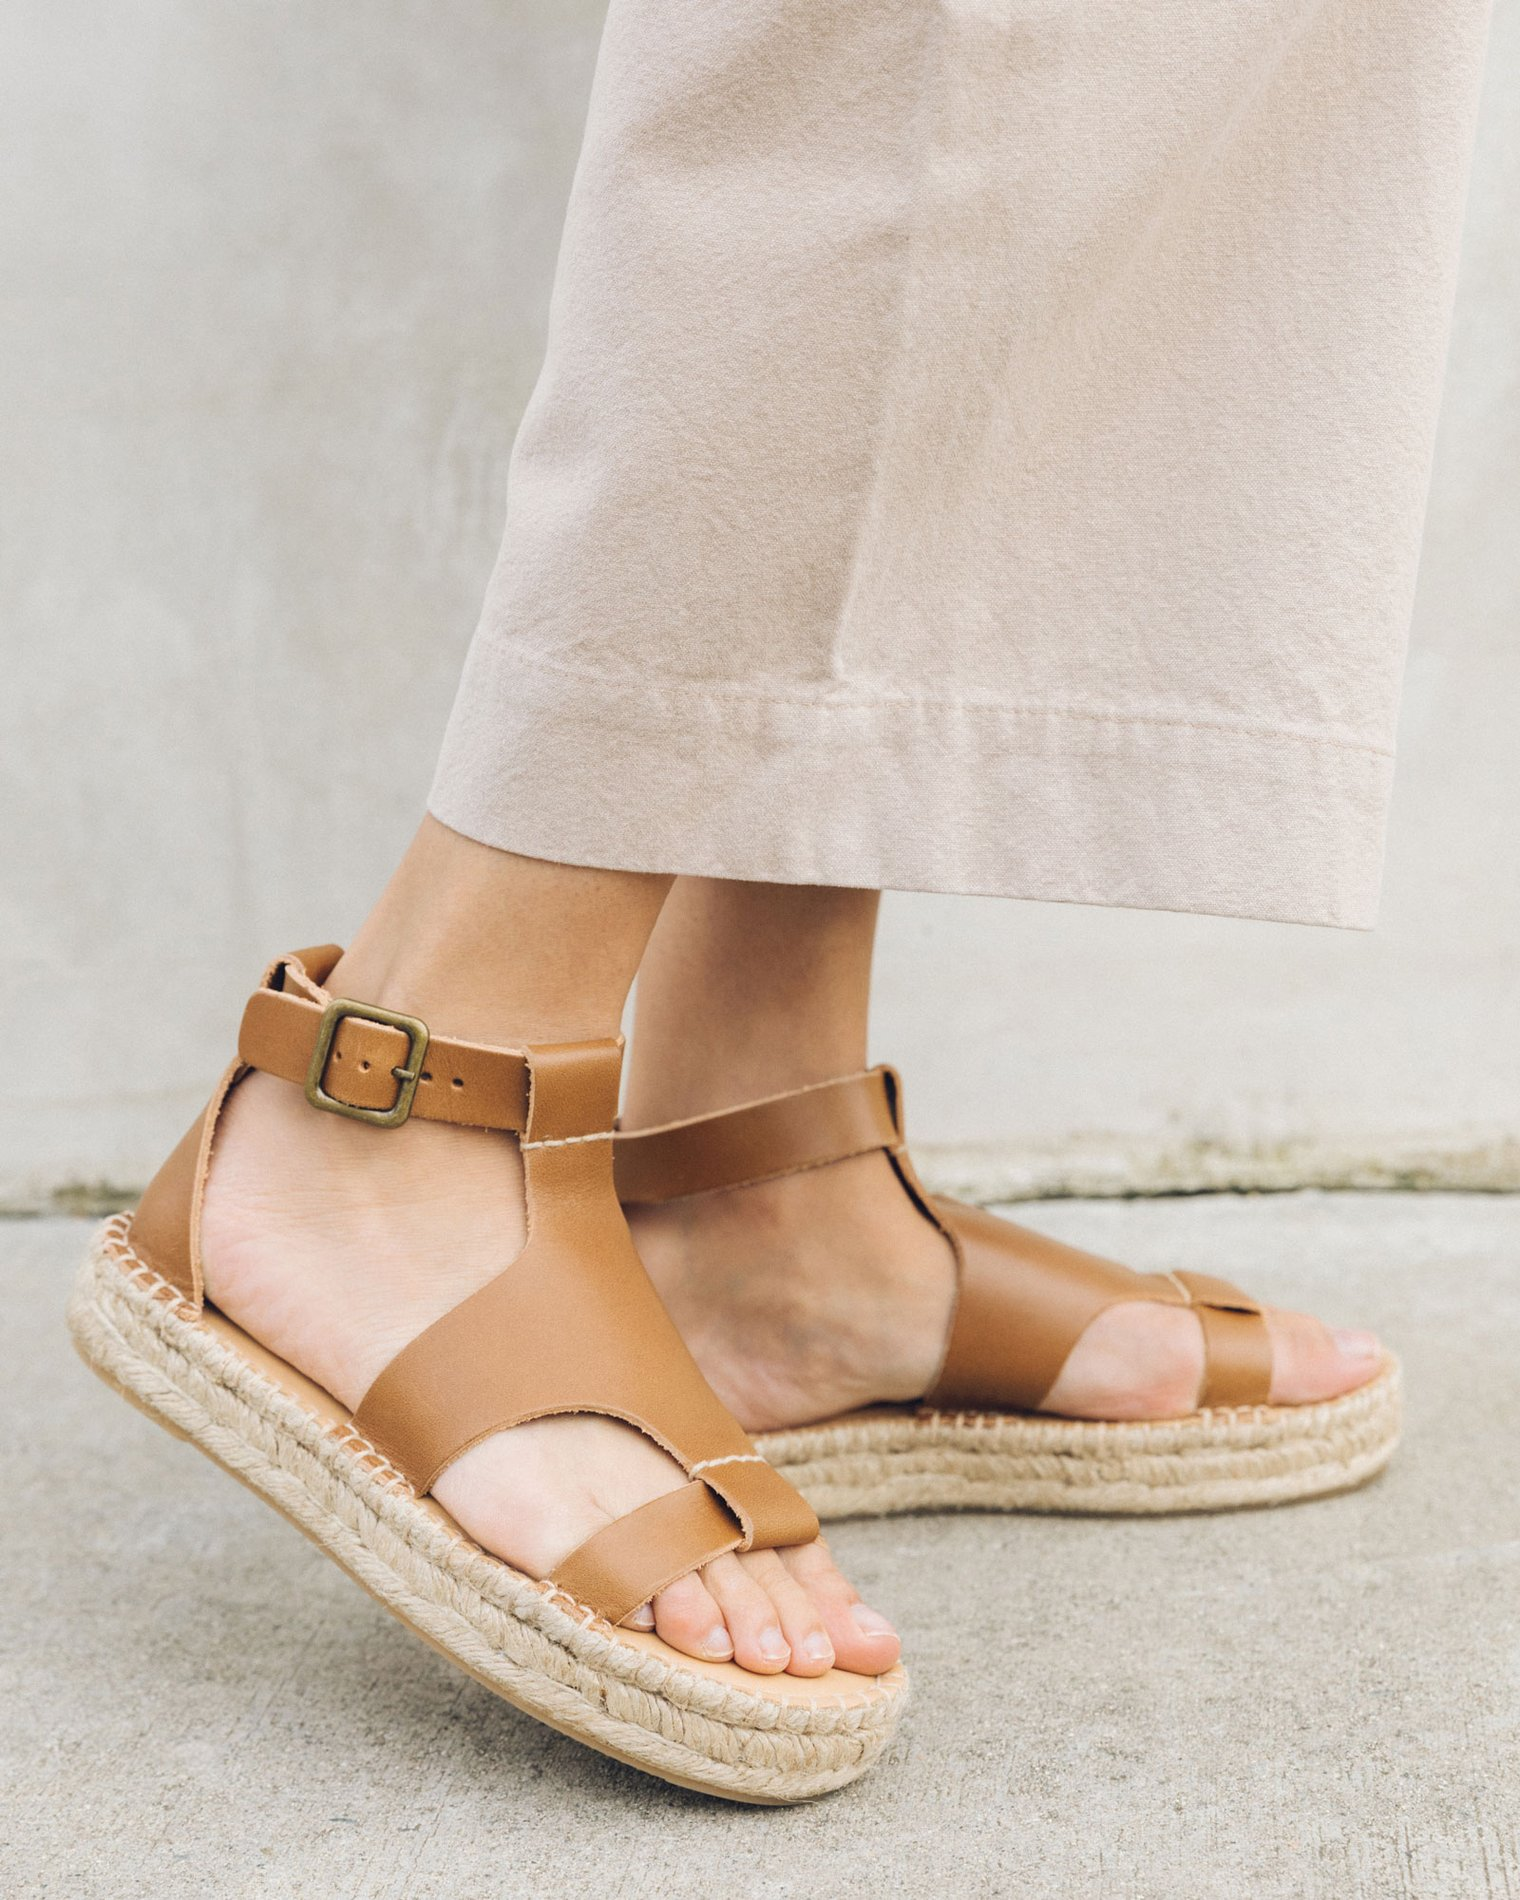 Brown leather platform sandals from Soludos